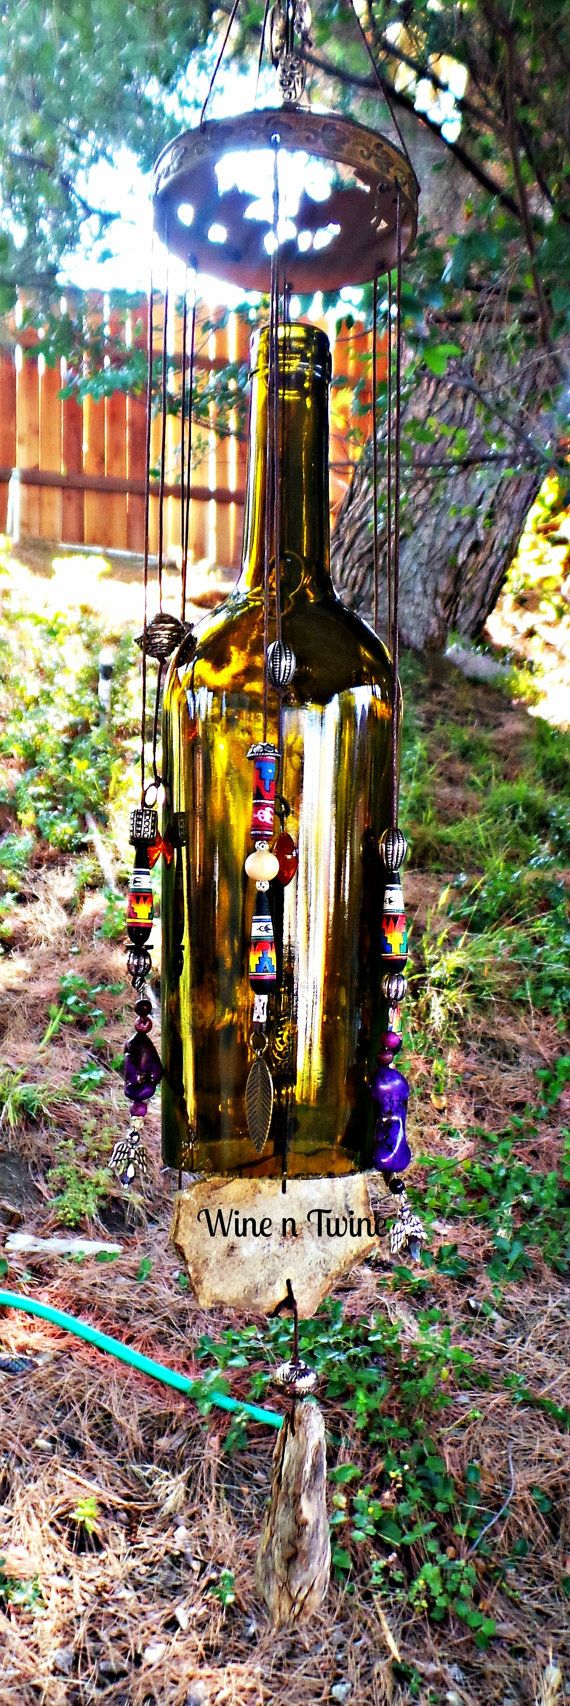 This is an original, one-of-a-kind wind chime. Made from a recycled wine bottle Tom has added a metal top which a mixture handmade Southwestern Beads